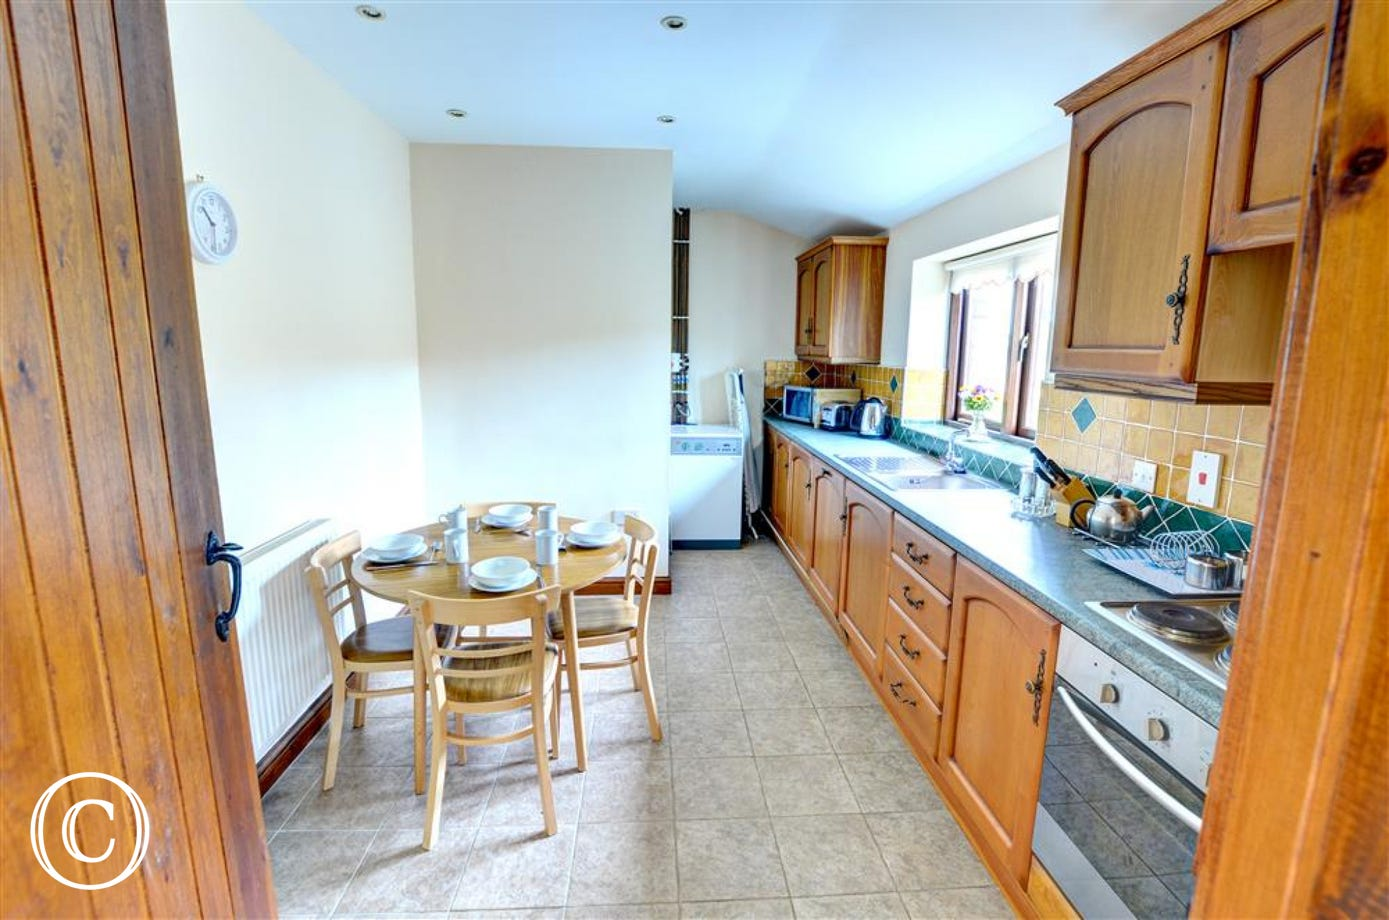 The spacious kitchen includes a circular breakfast table and chairs